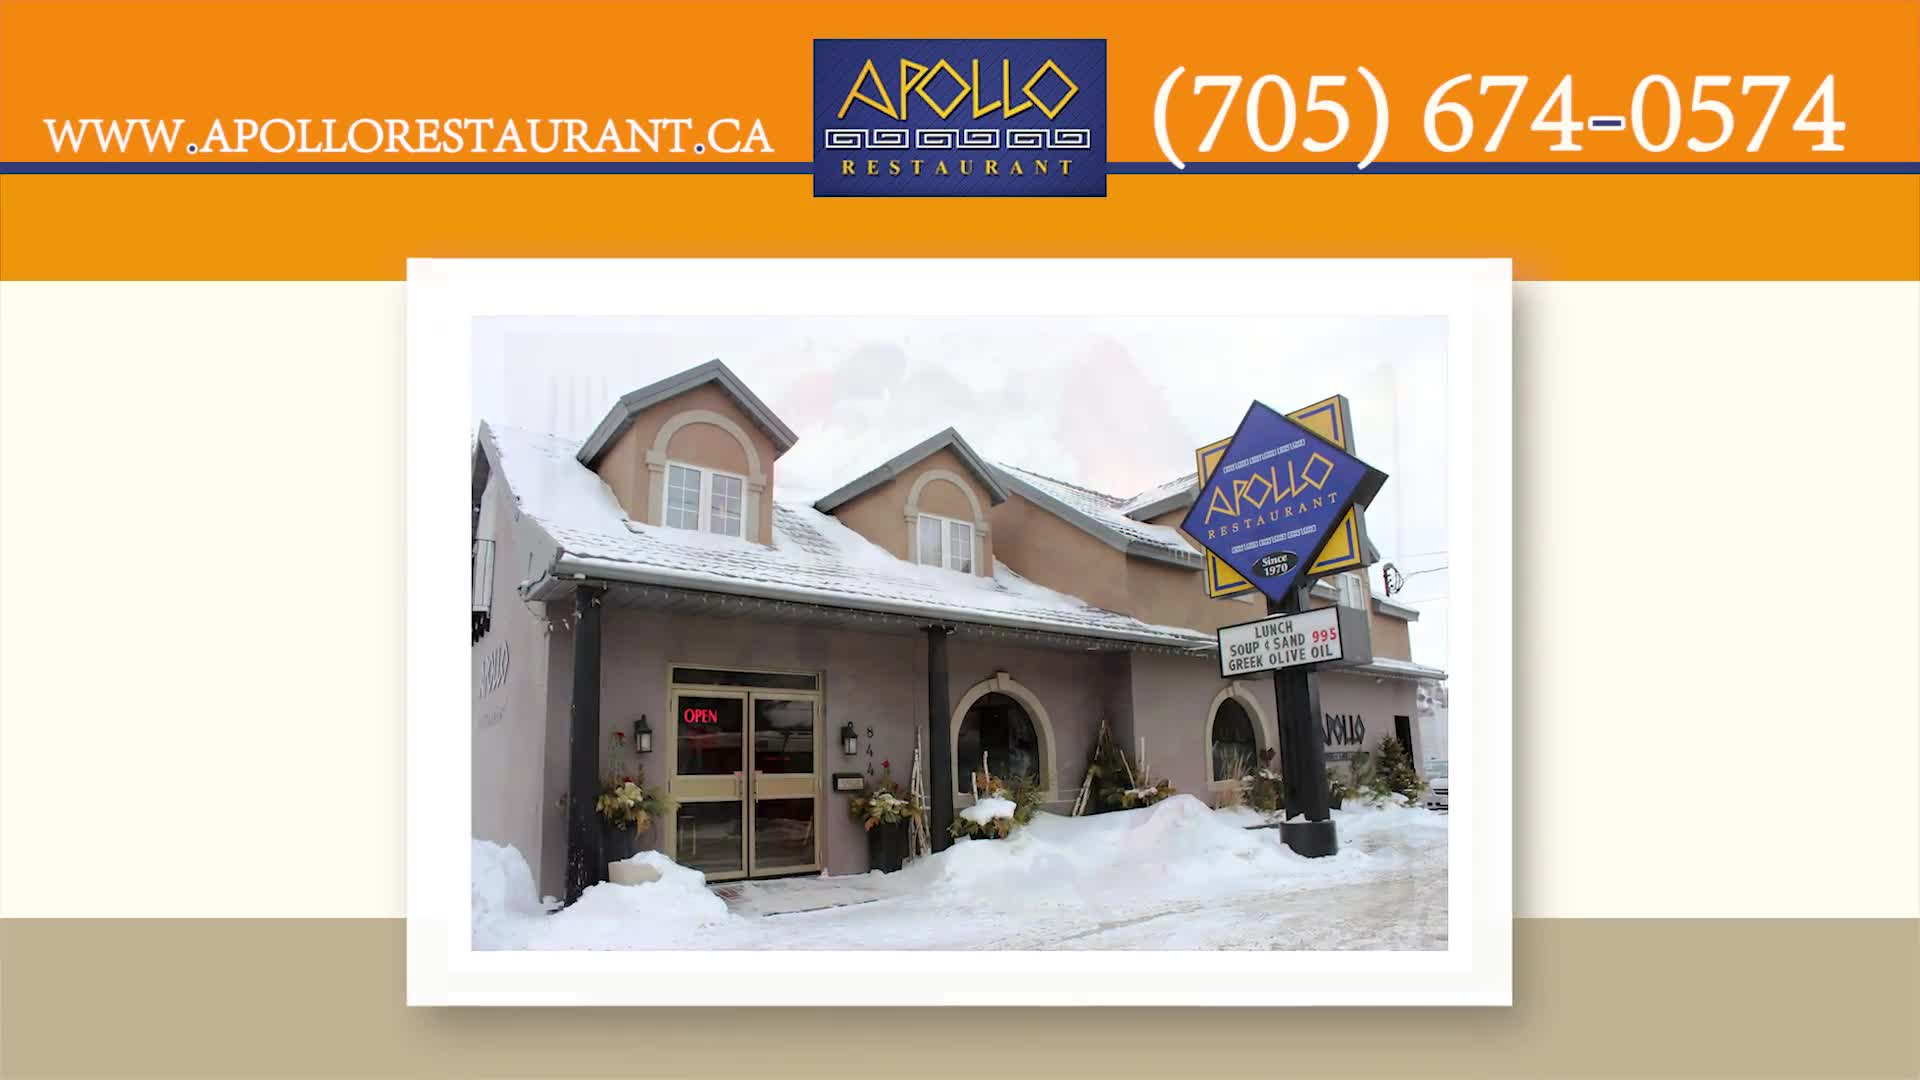 Apollo Restaurant & Tavern - Restaurants - 705-674-0574